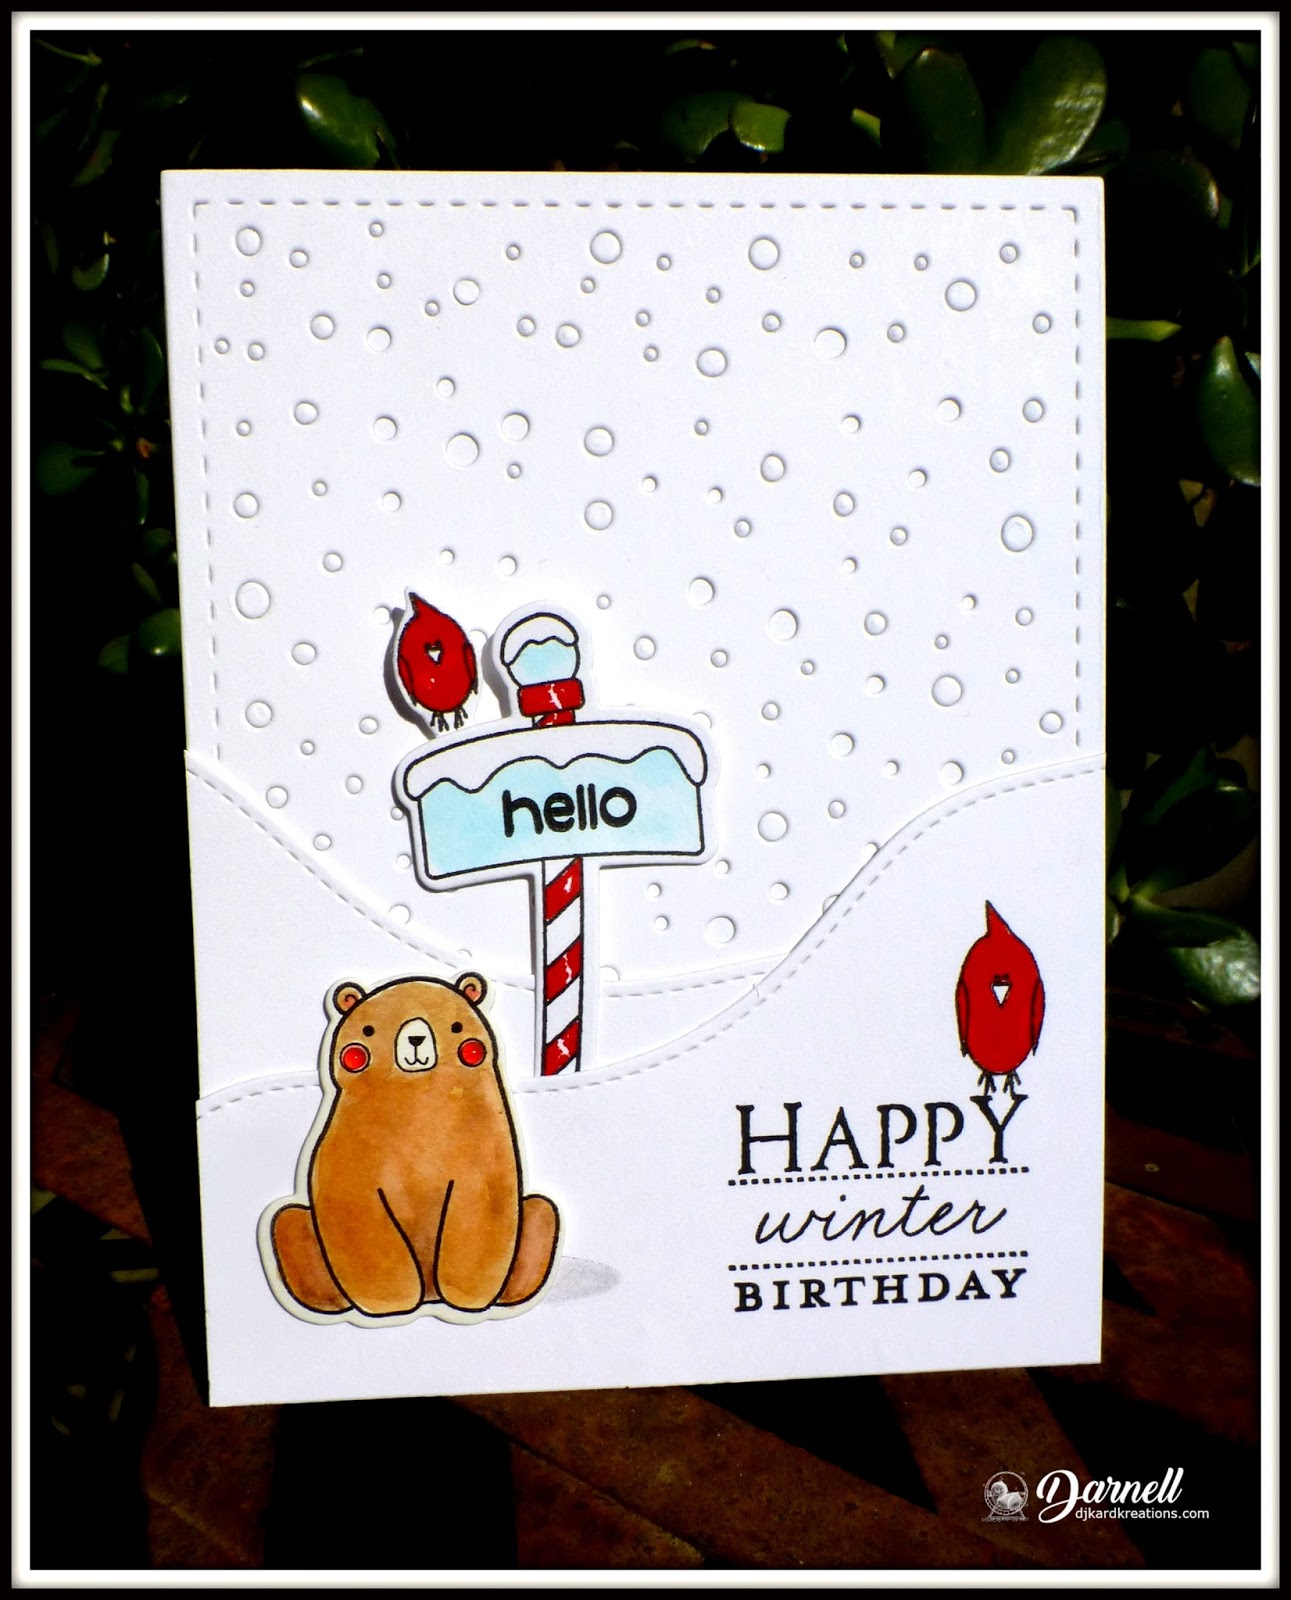 Djkardkreations wintery birthdays i did make three of these birthdays cards so im proud of that but i wish i could say i also made several more cards with this design with christmas m4hsunfo